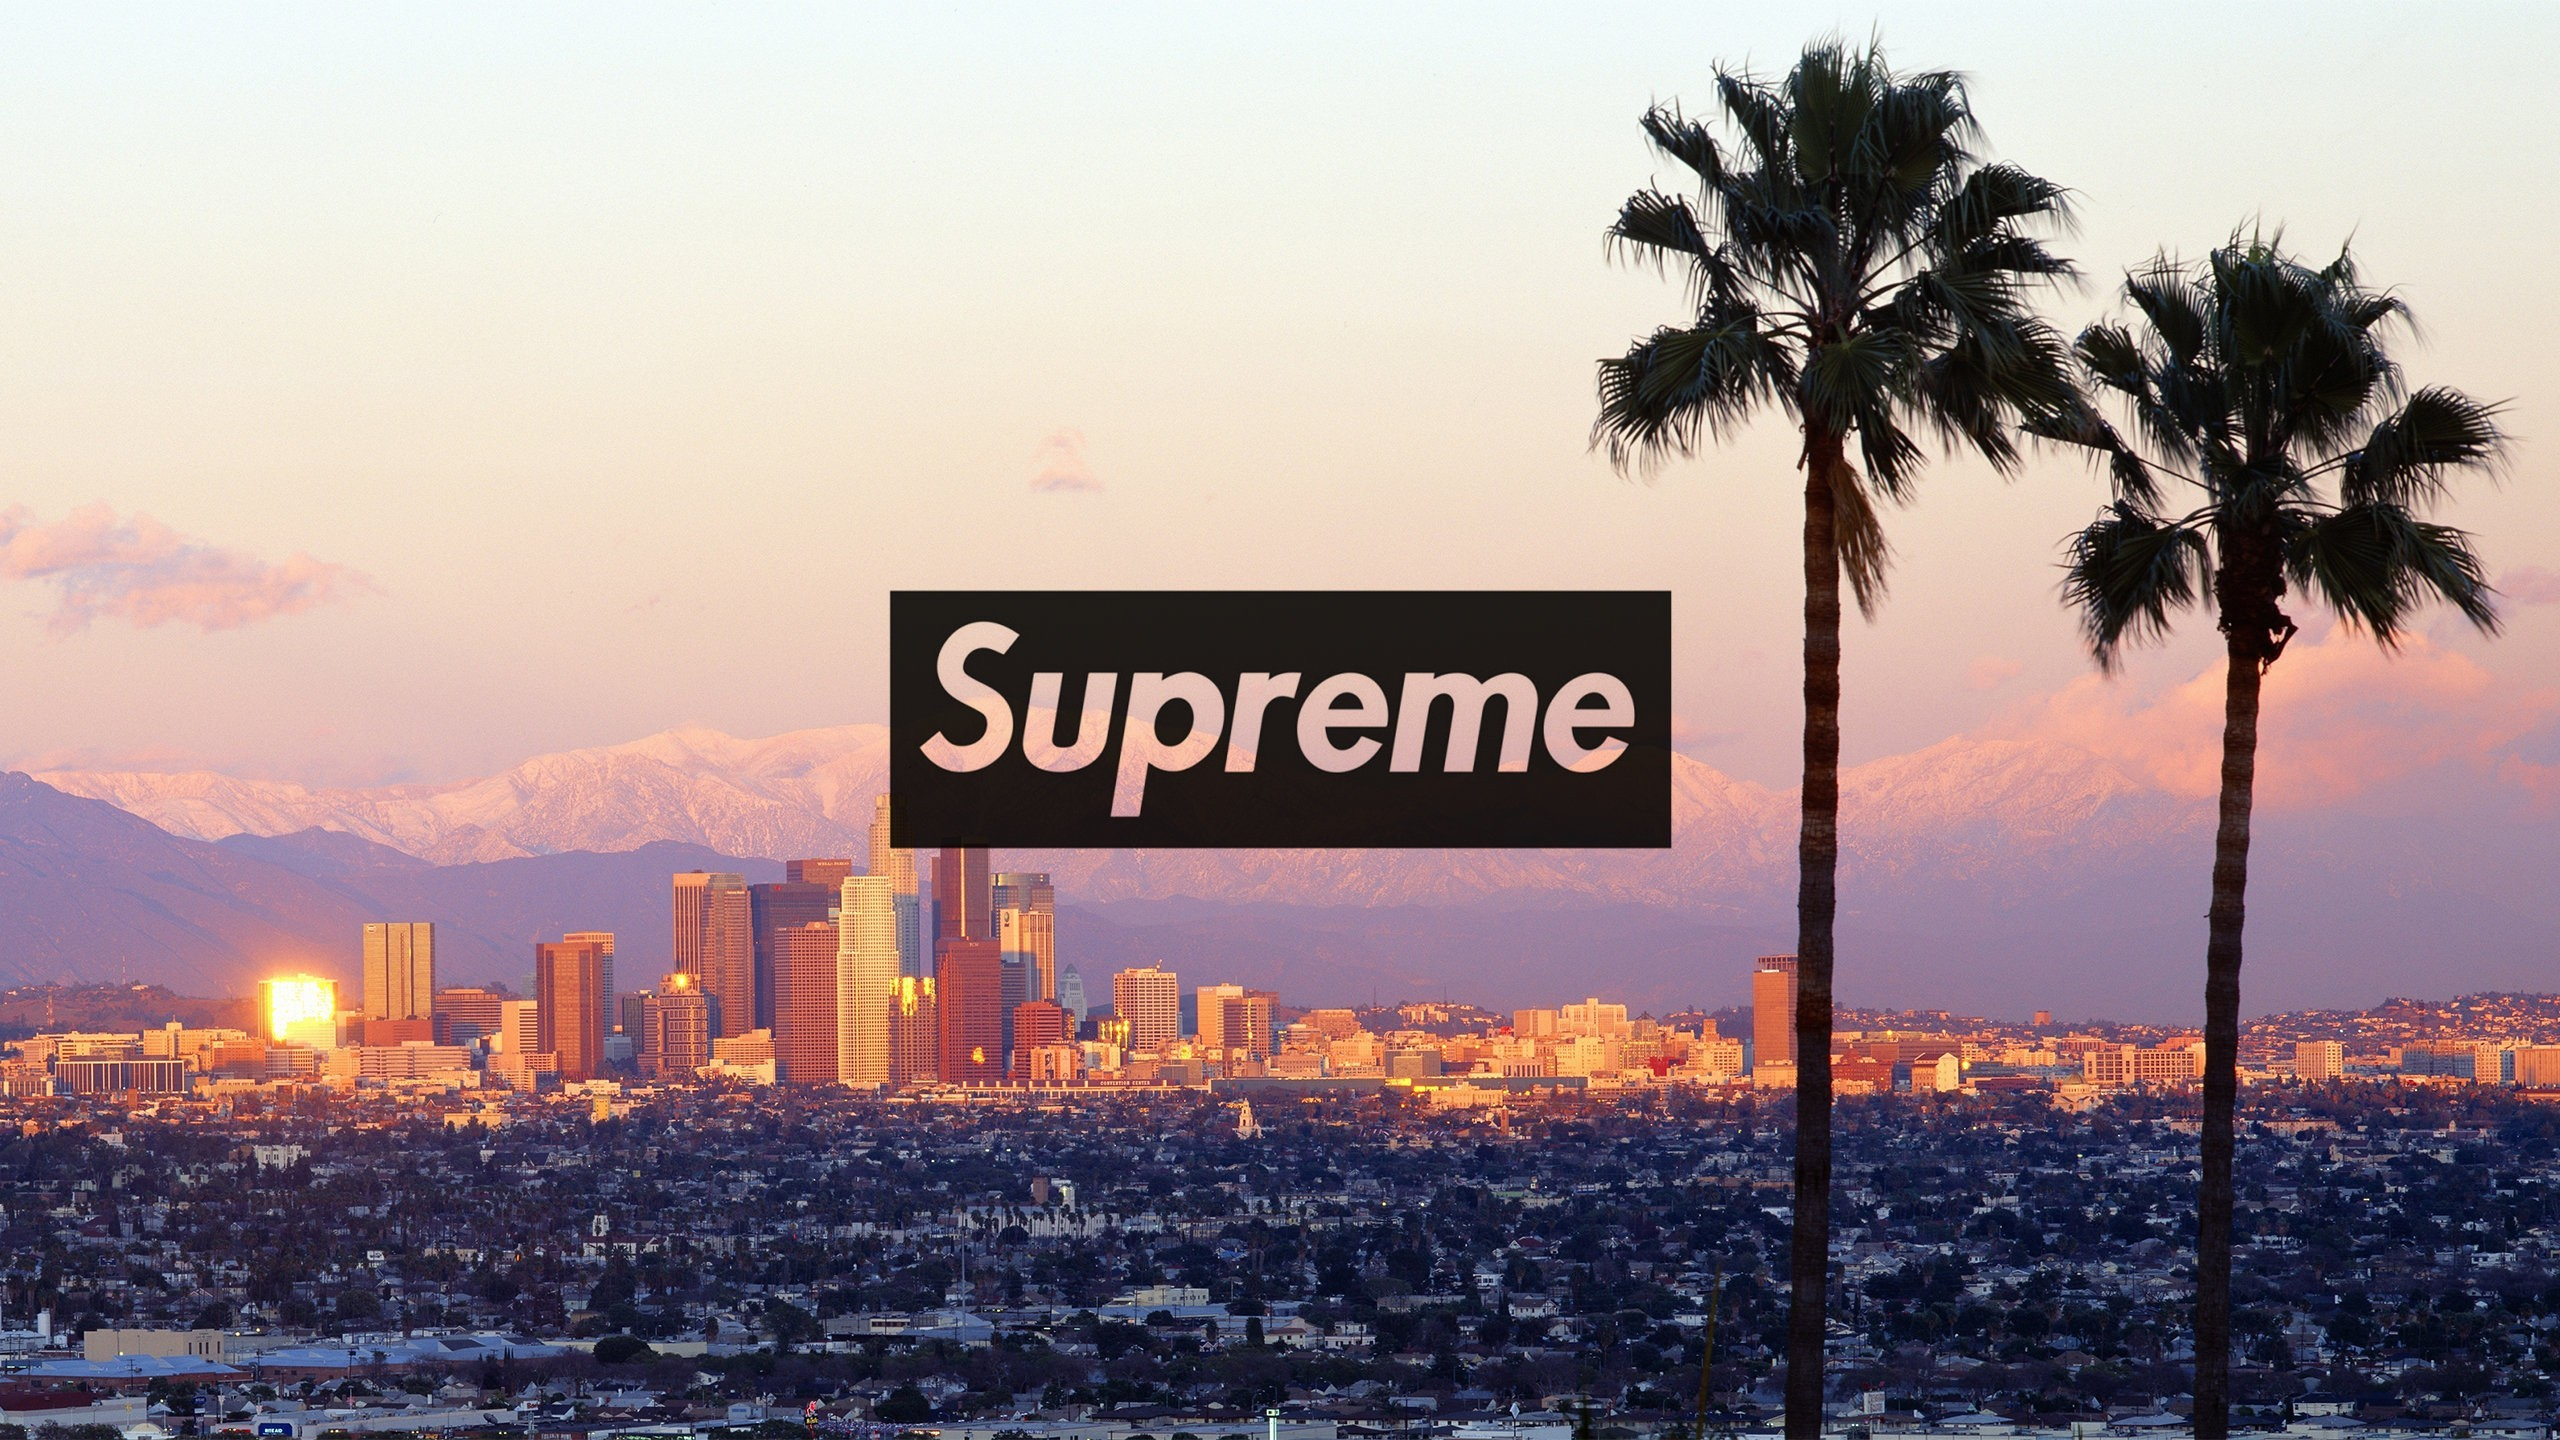 Res: 2560x1440, Supreme Wallpapers Download Supreme Hd Wallpapers